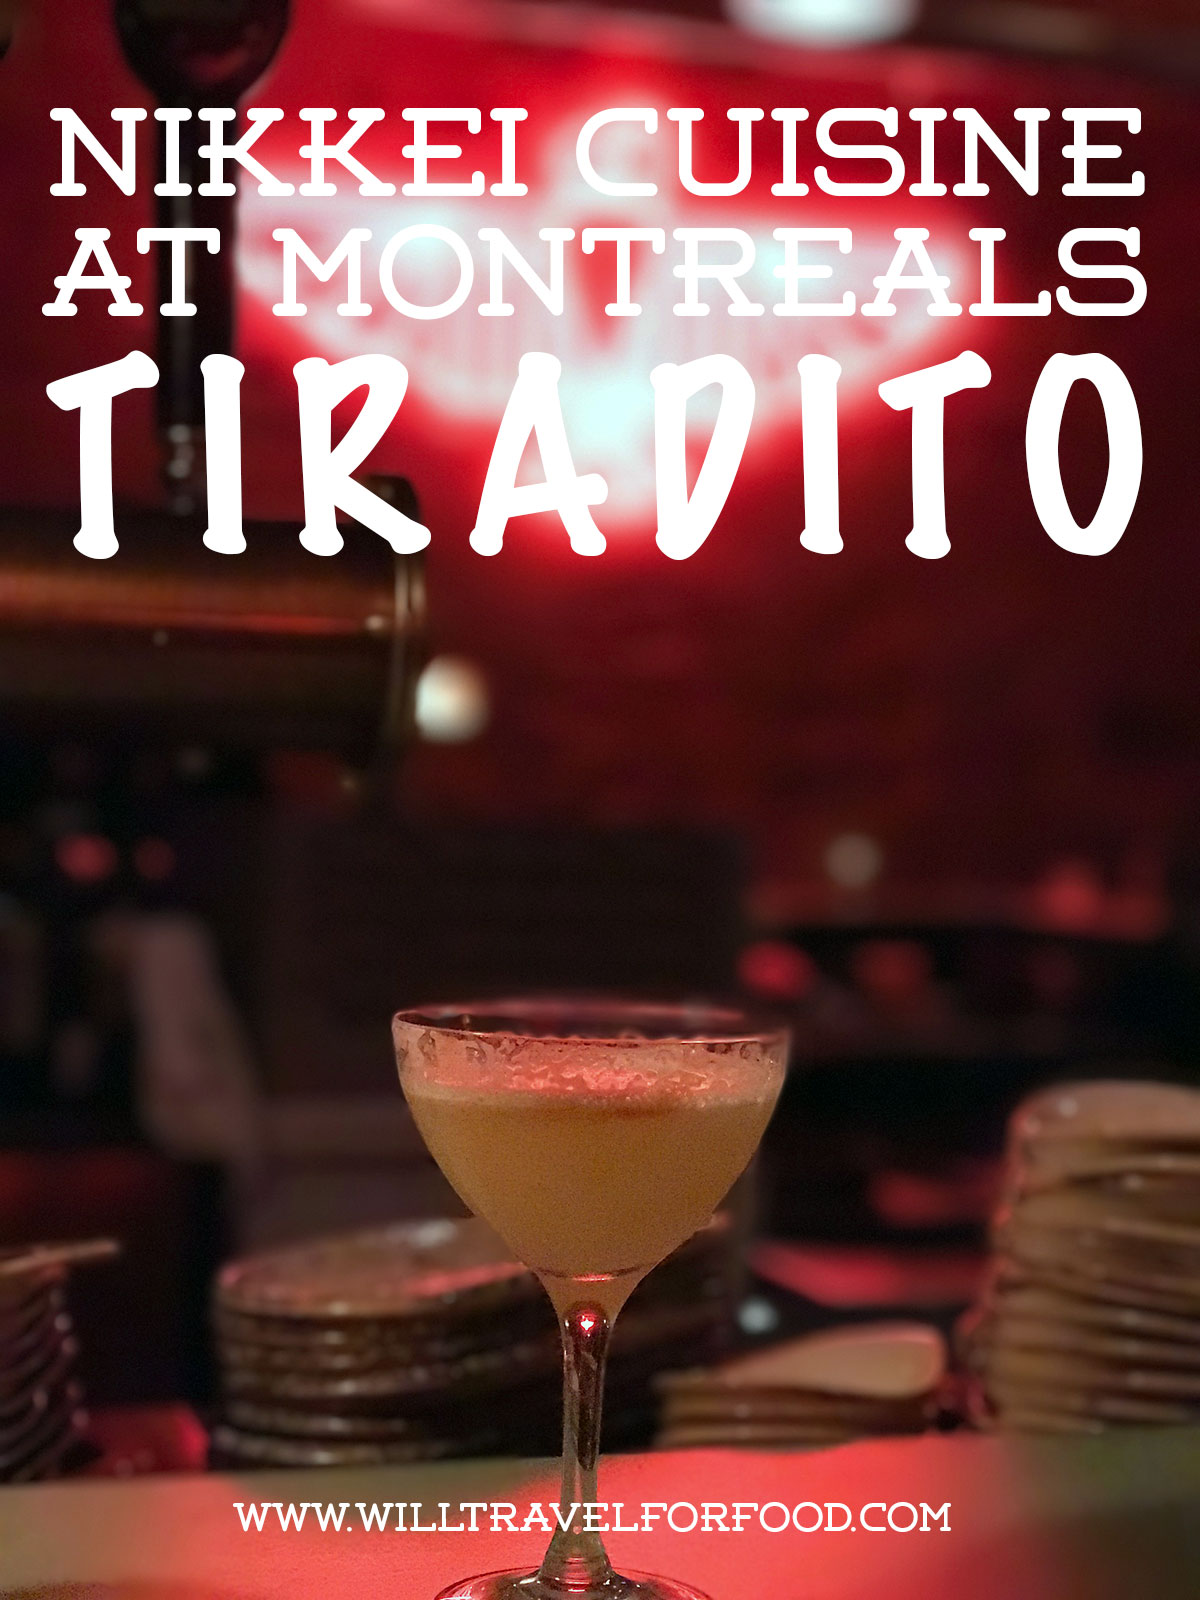 nikkei-cuisine-tiradito-montreal © Will Travel for Food